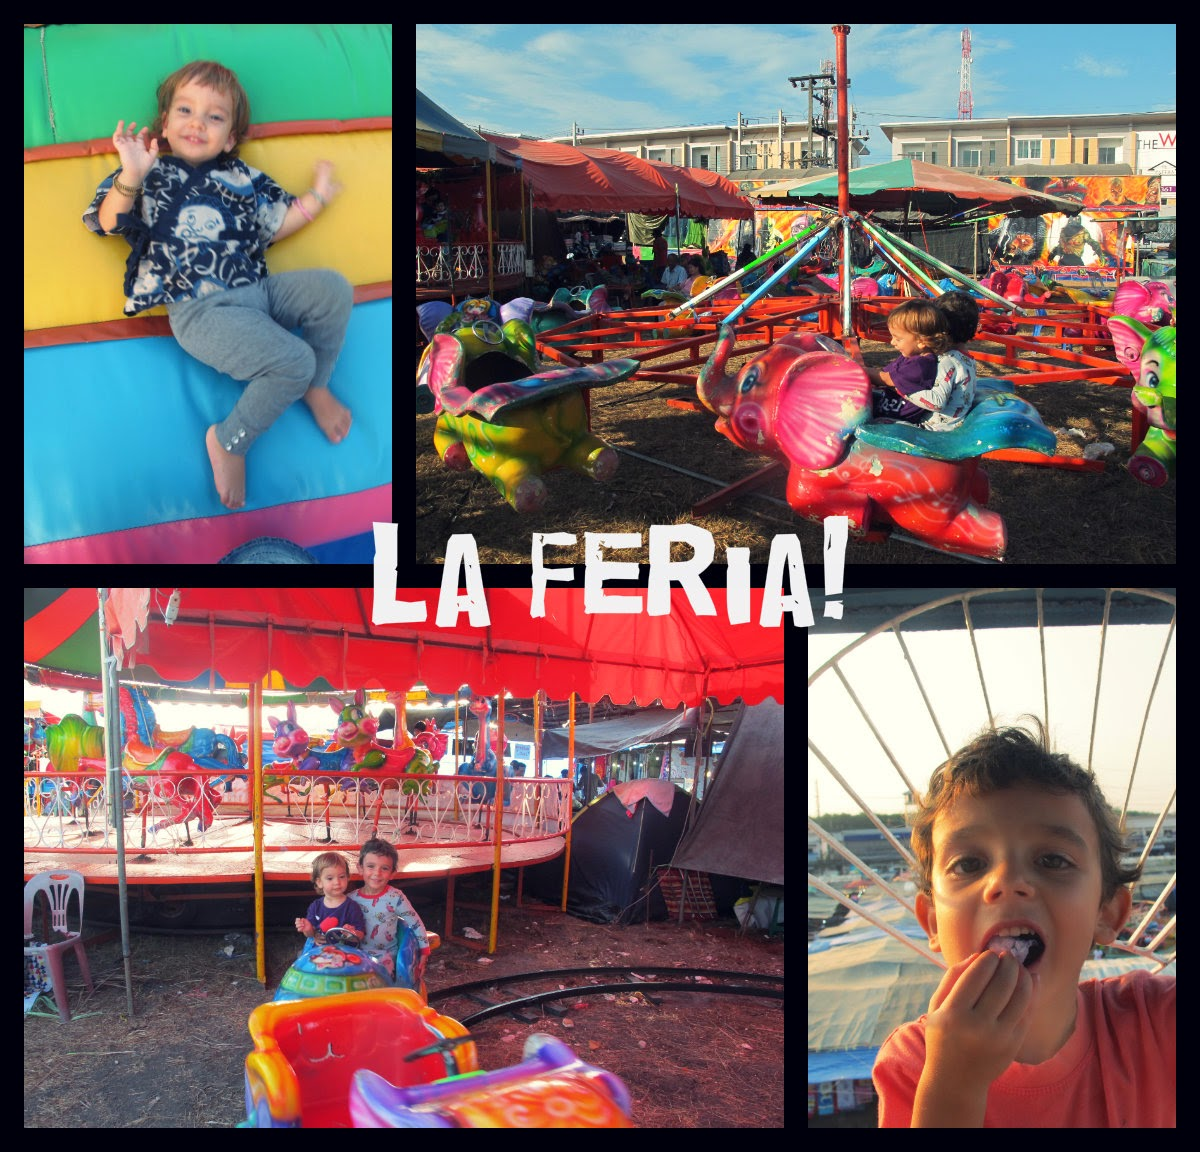 fun fair, kids, collage, la feria, phuket, crazy little family adventure